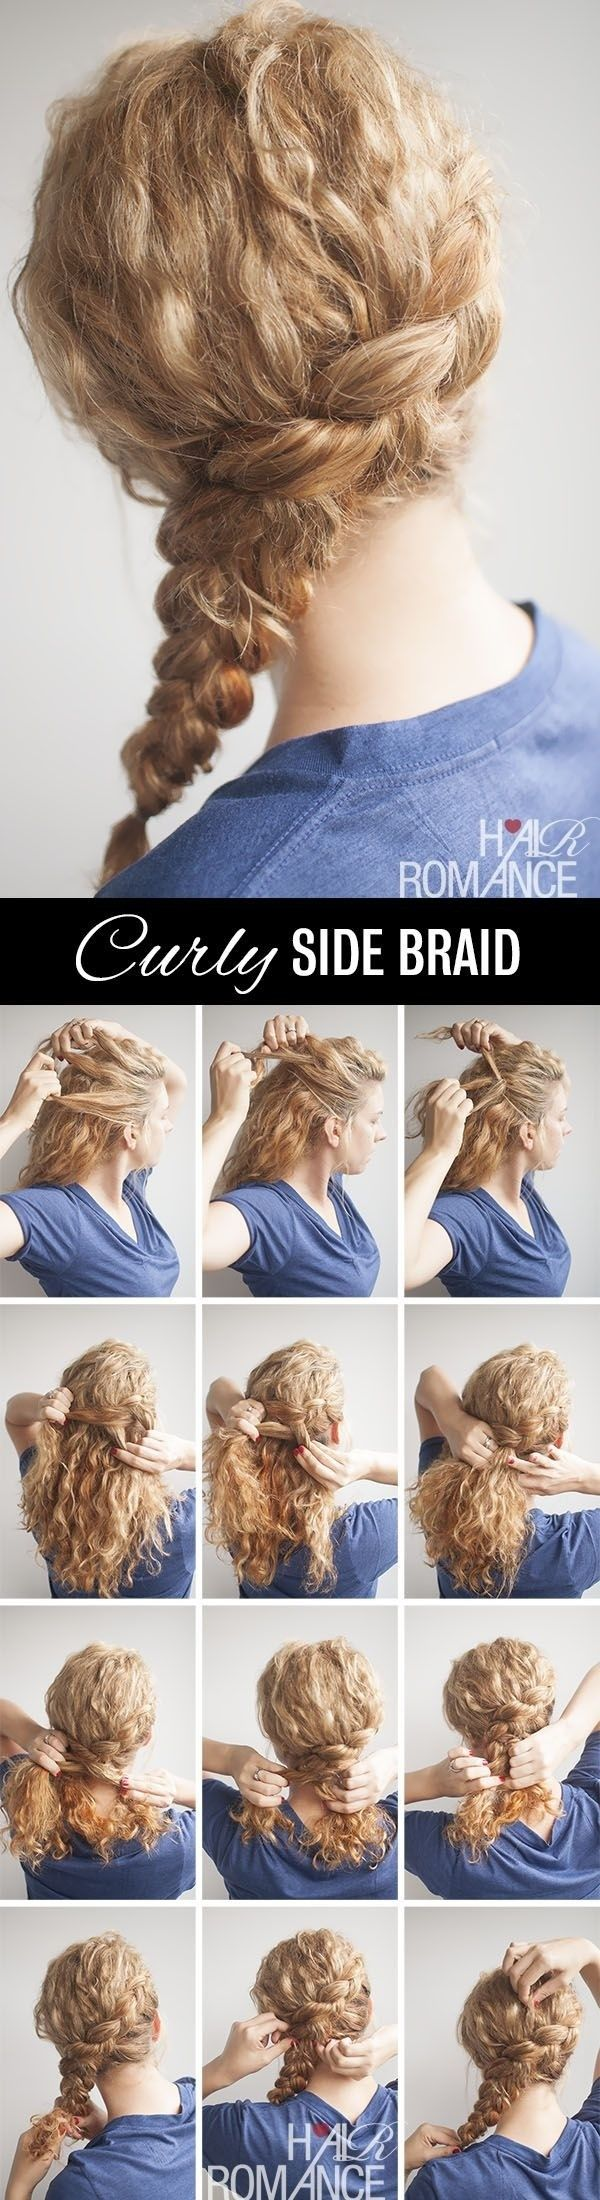 Fine 1000 Ideas About Curly Hair Braids On Pinterest Hairstyles Hairstyle Inspiration Daily Dogsangcom